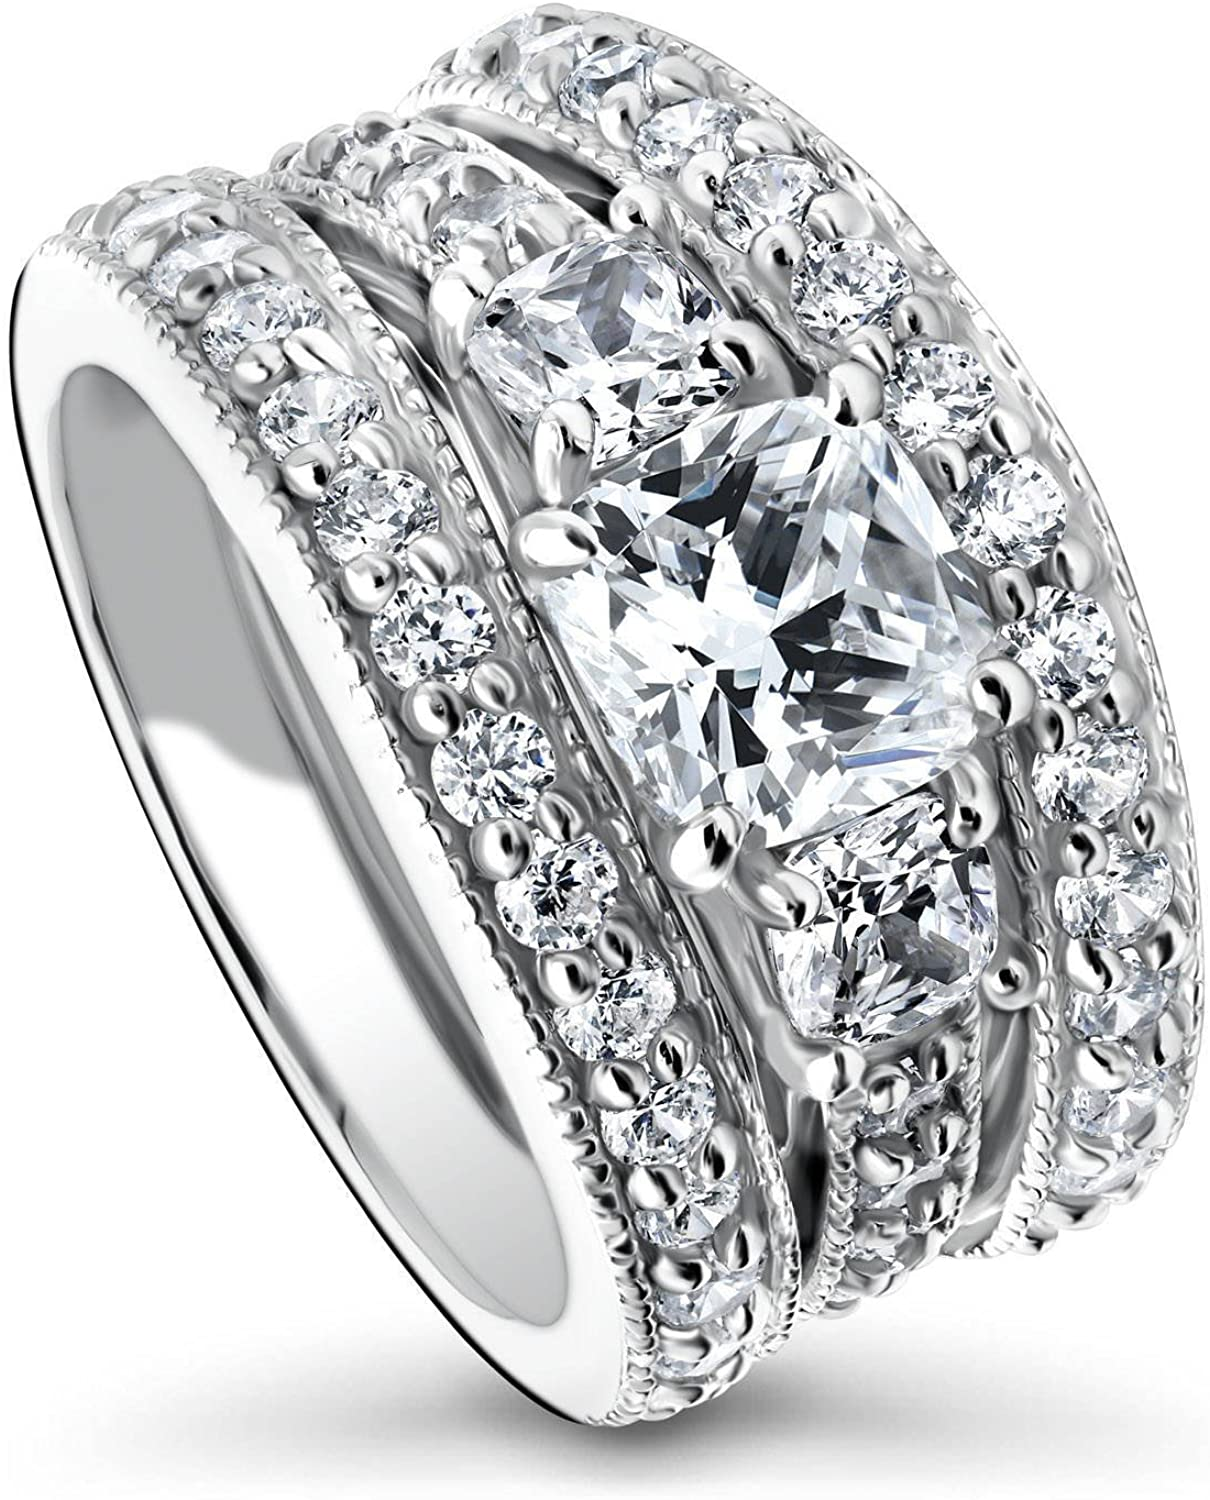 BERRICLE Rhodium Plated Sterling Silver Cushion Cut Cubic Zirconia CZ 3-Stone Anniversary Engagement Wedding Ring Set 3.24 CTW